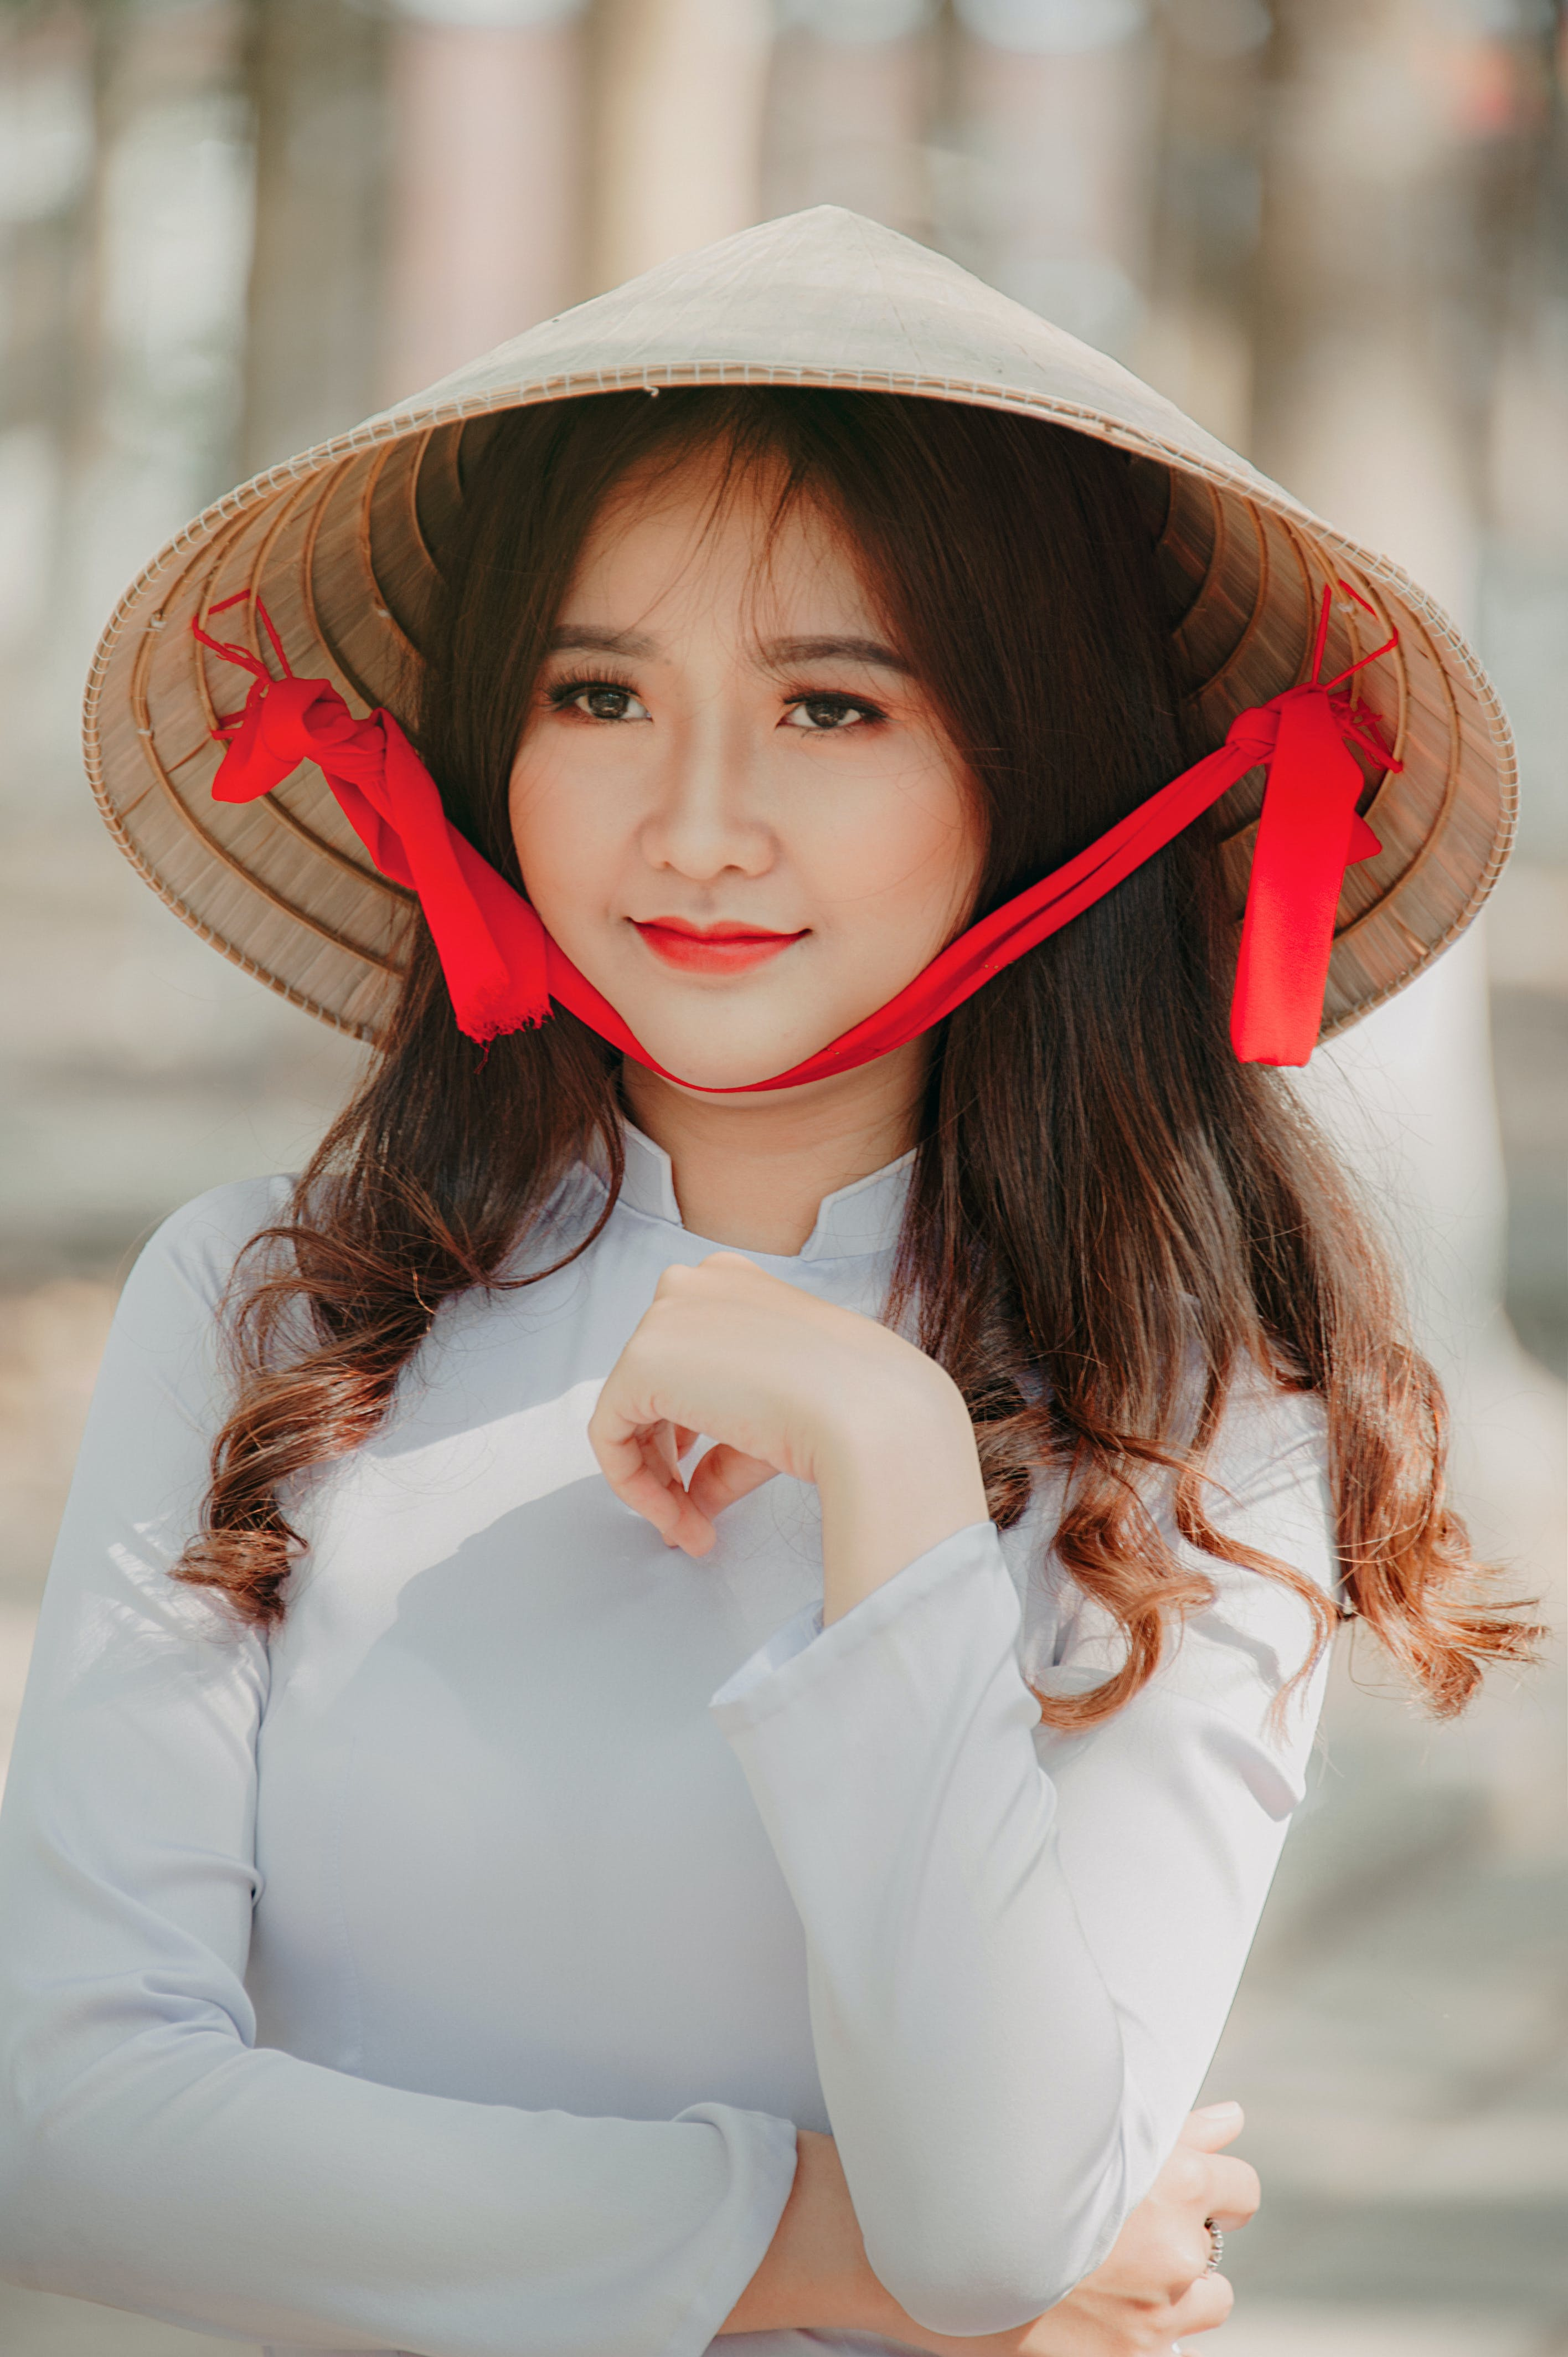 Photography of a Woman Wearing Asian conical hat